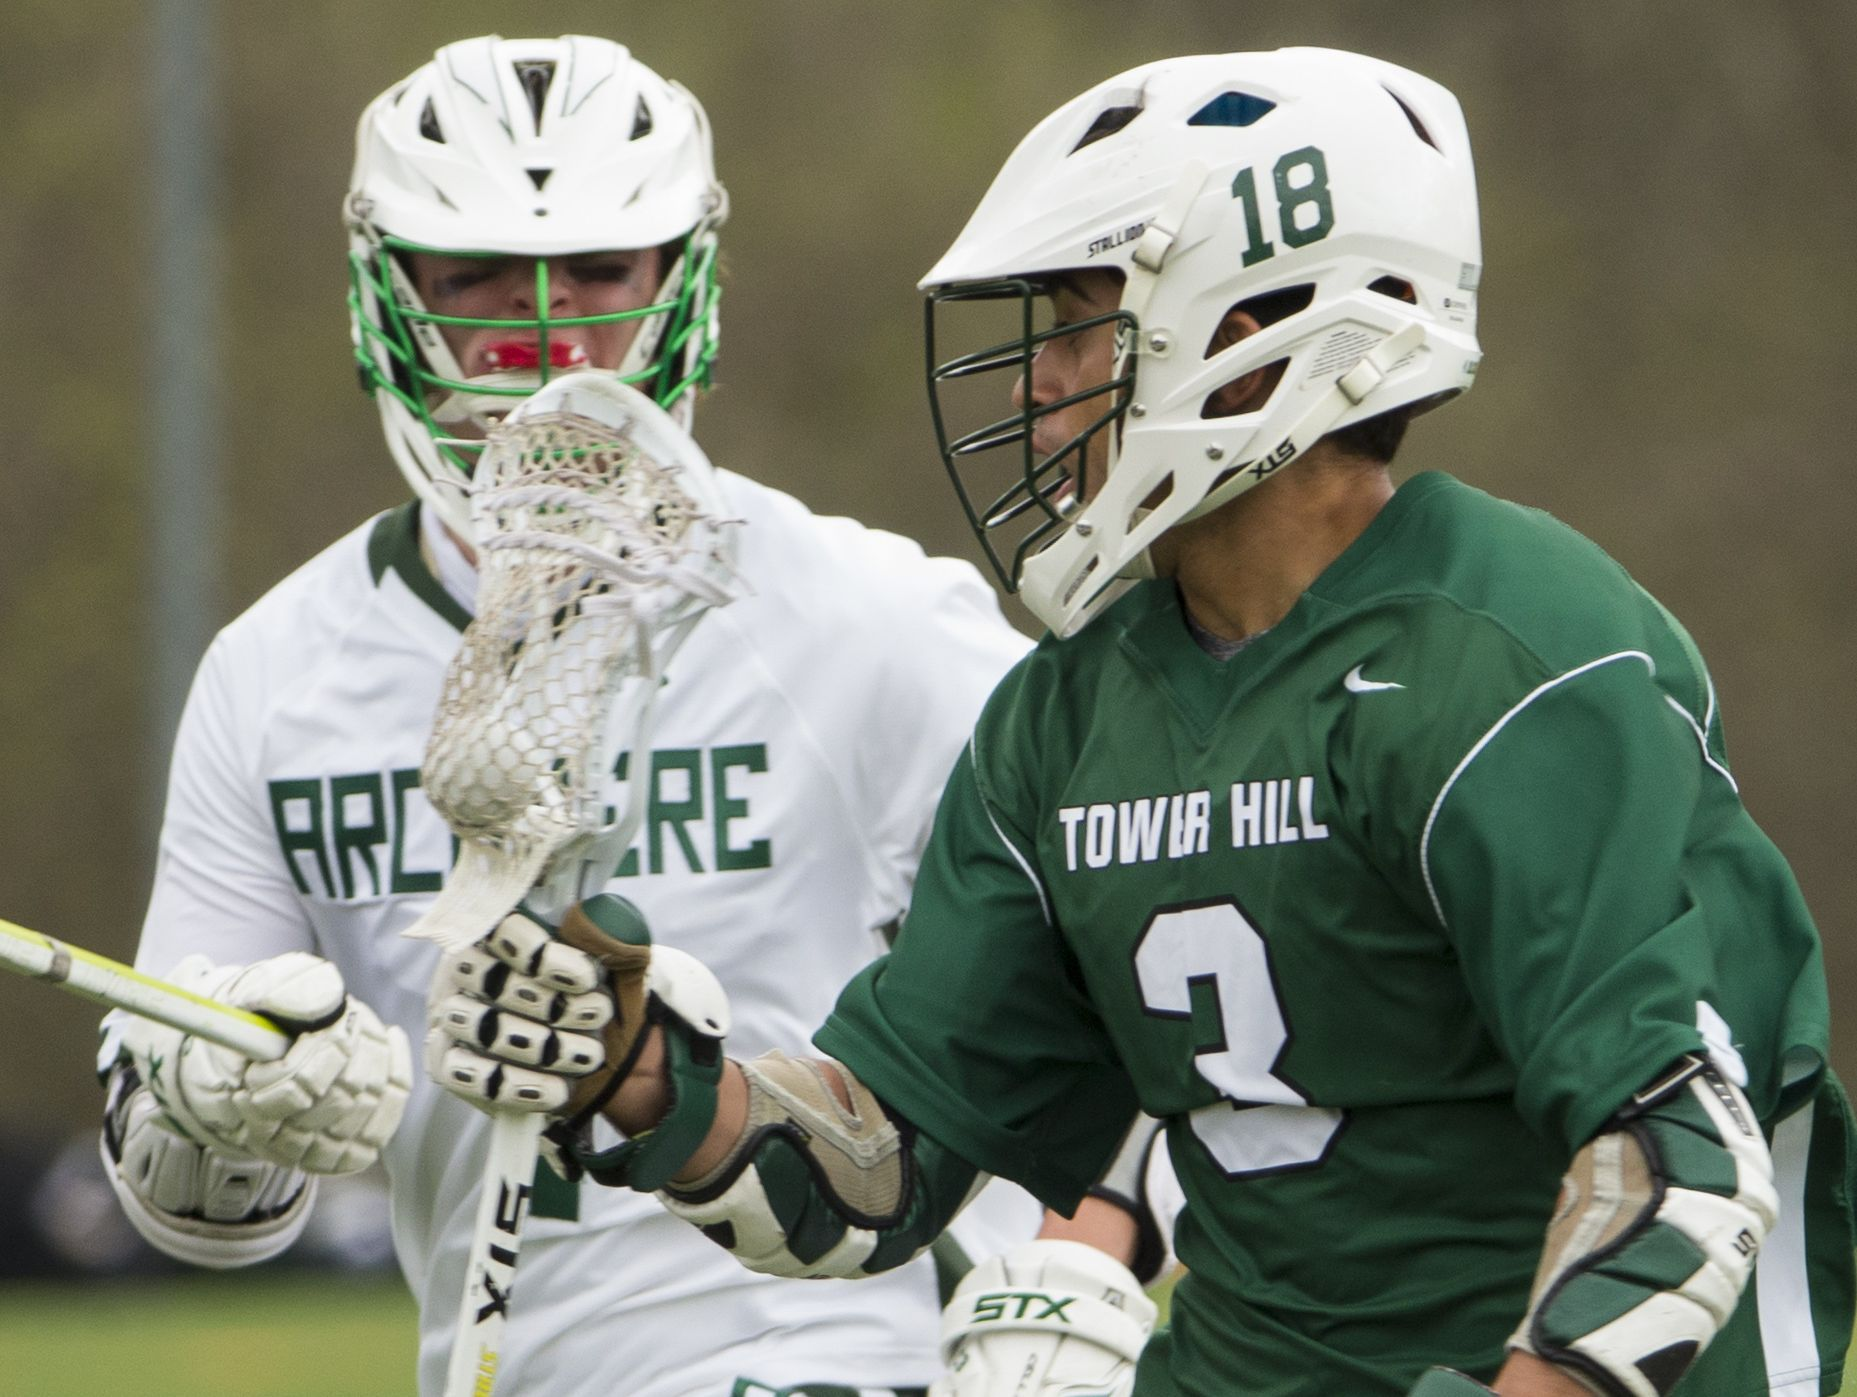 Archmere's Cole Bauer (left) eyes Tower Hill's Andrew Cercena in the second half of Archmere's 12-7 win Saturday.